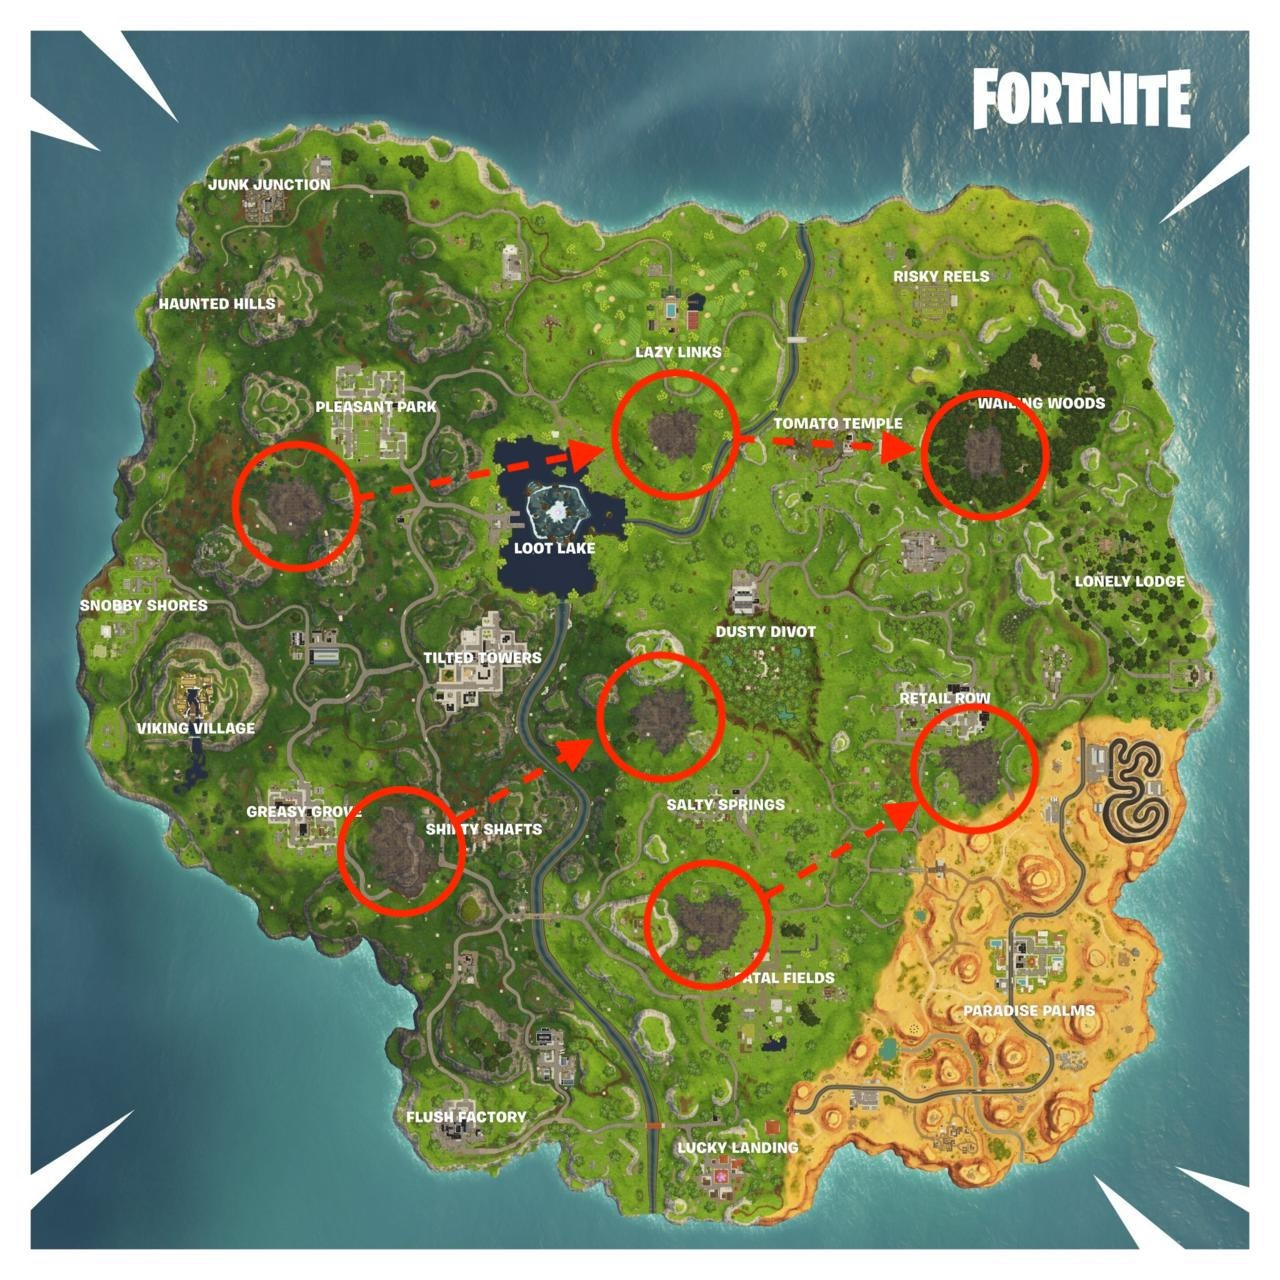 'Fortnite' Week 2 Challenges Shadow Stones and Corrupted Areas